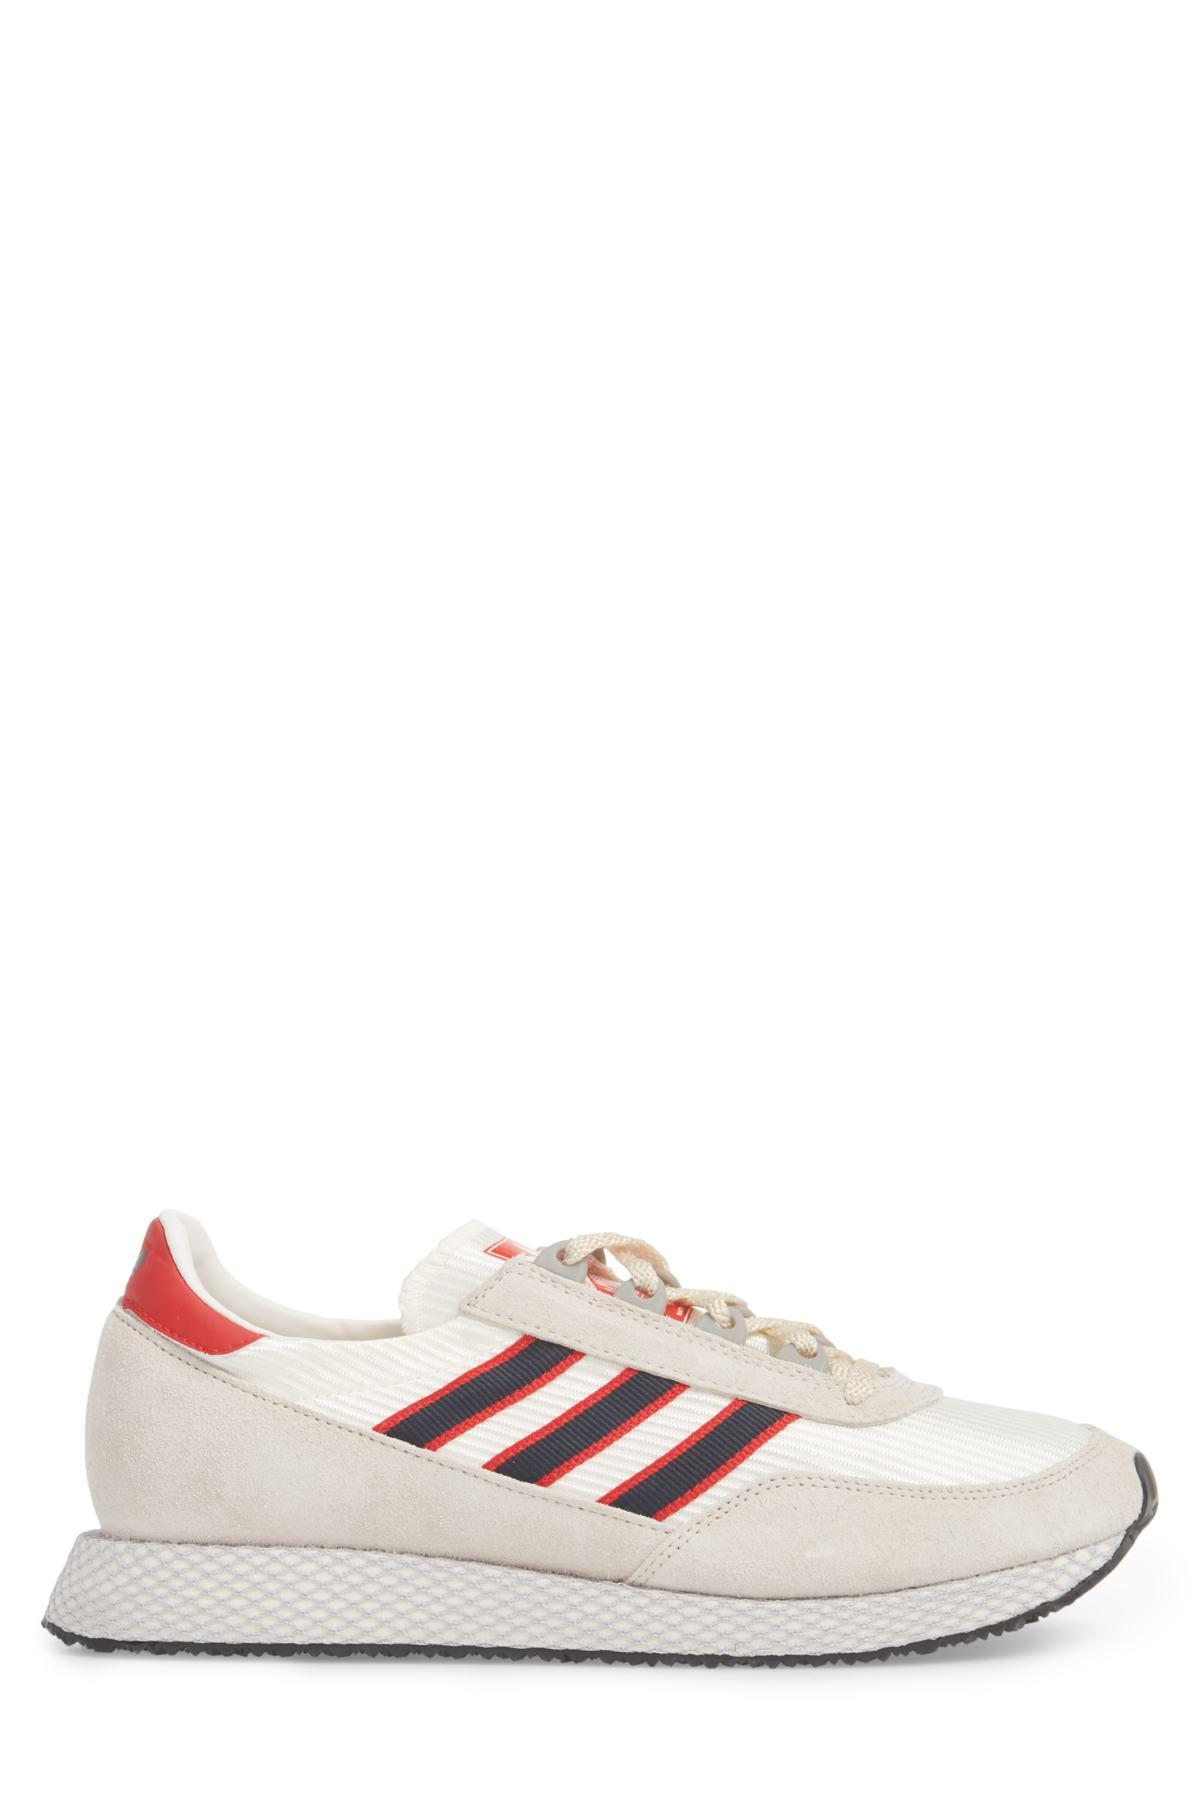 timeless design d3dda 478e6 ... new concept 50365 5c4b3 Adidas - Multicolor Glenbuck Spzl Sneaker (men)  for Men -